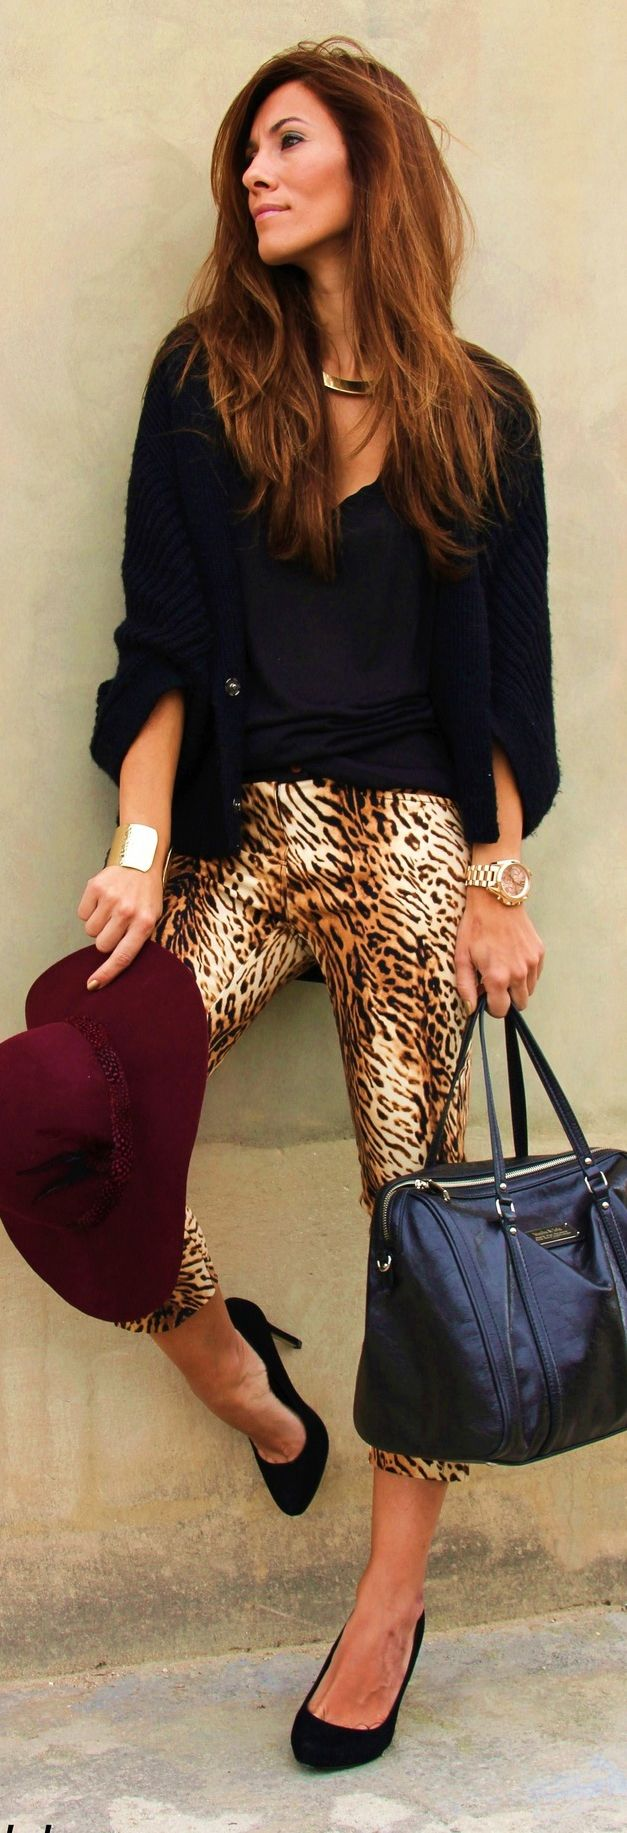 animal print despojado e chic !